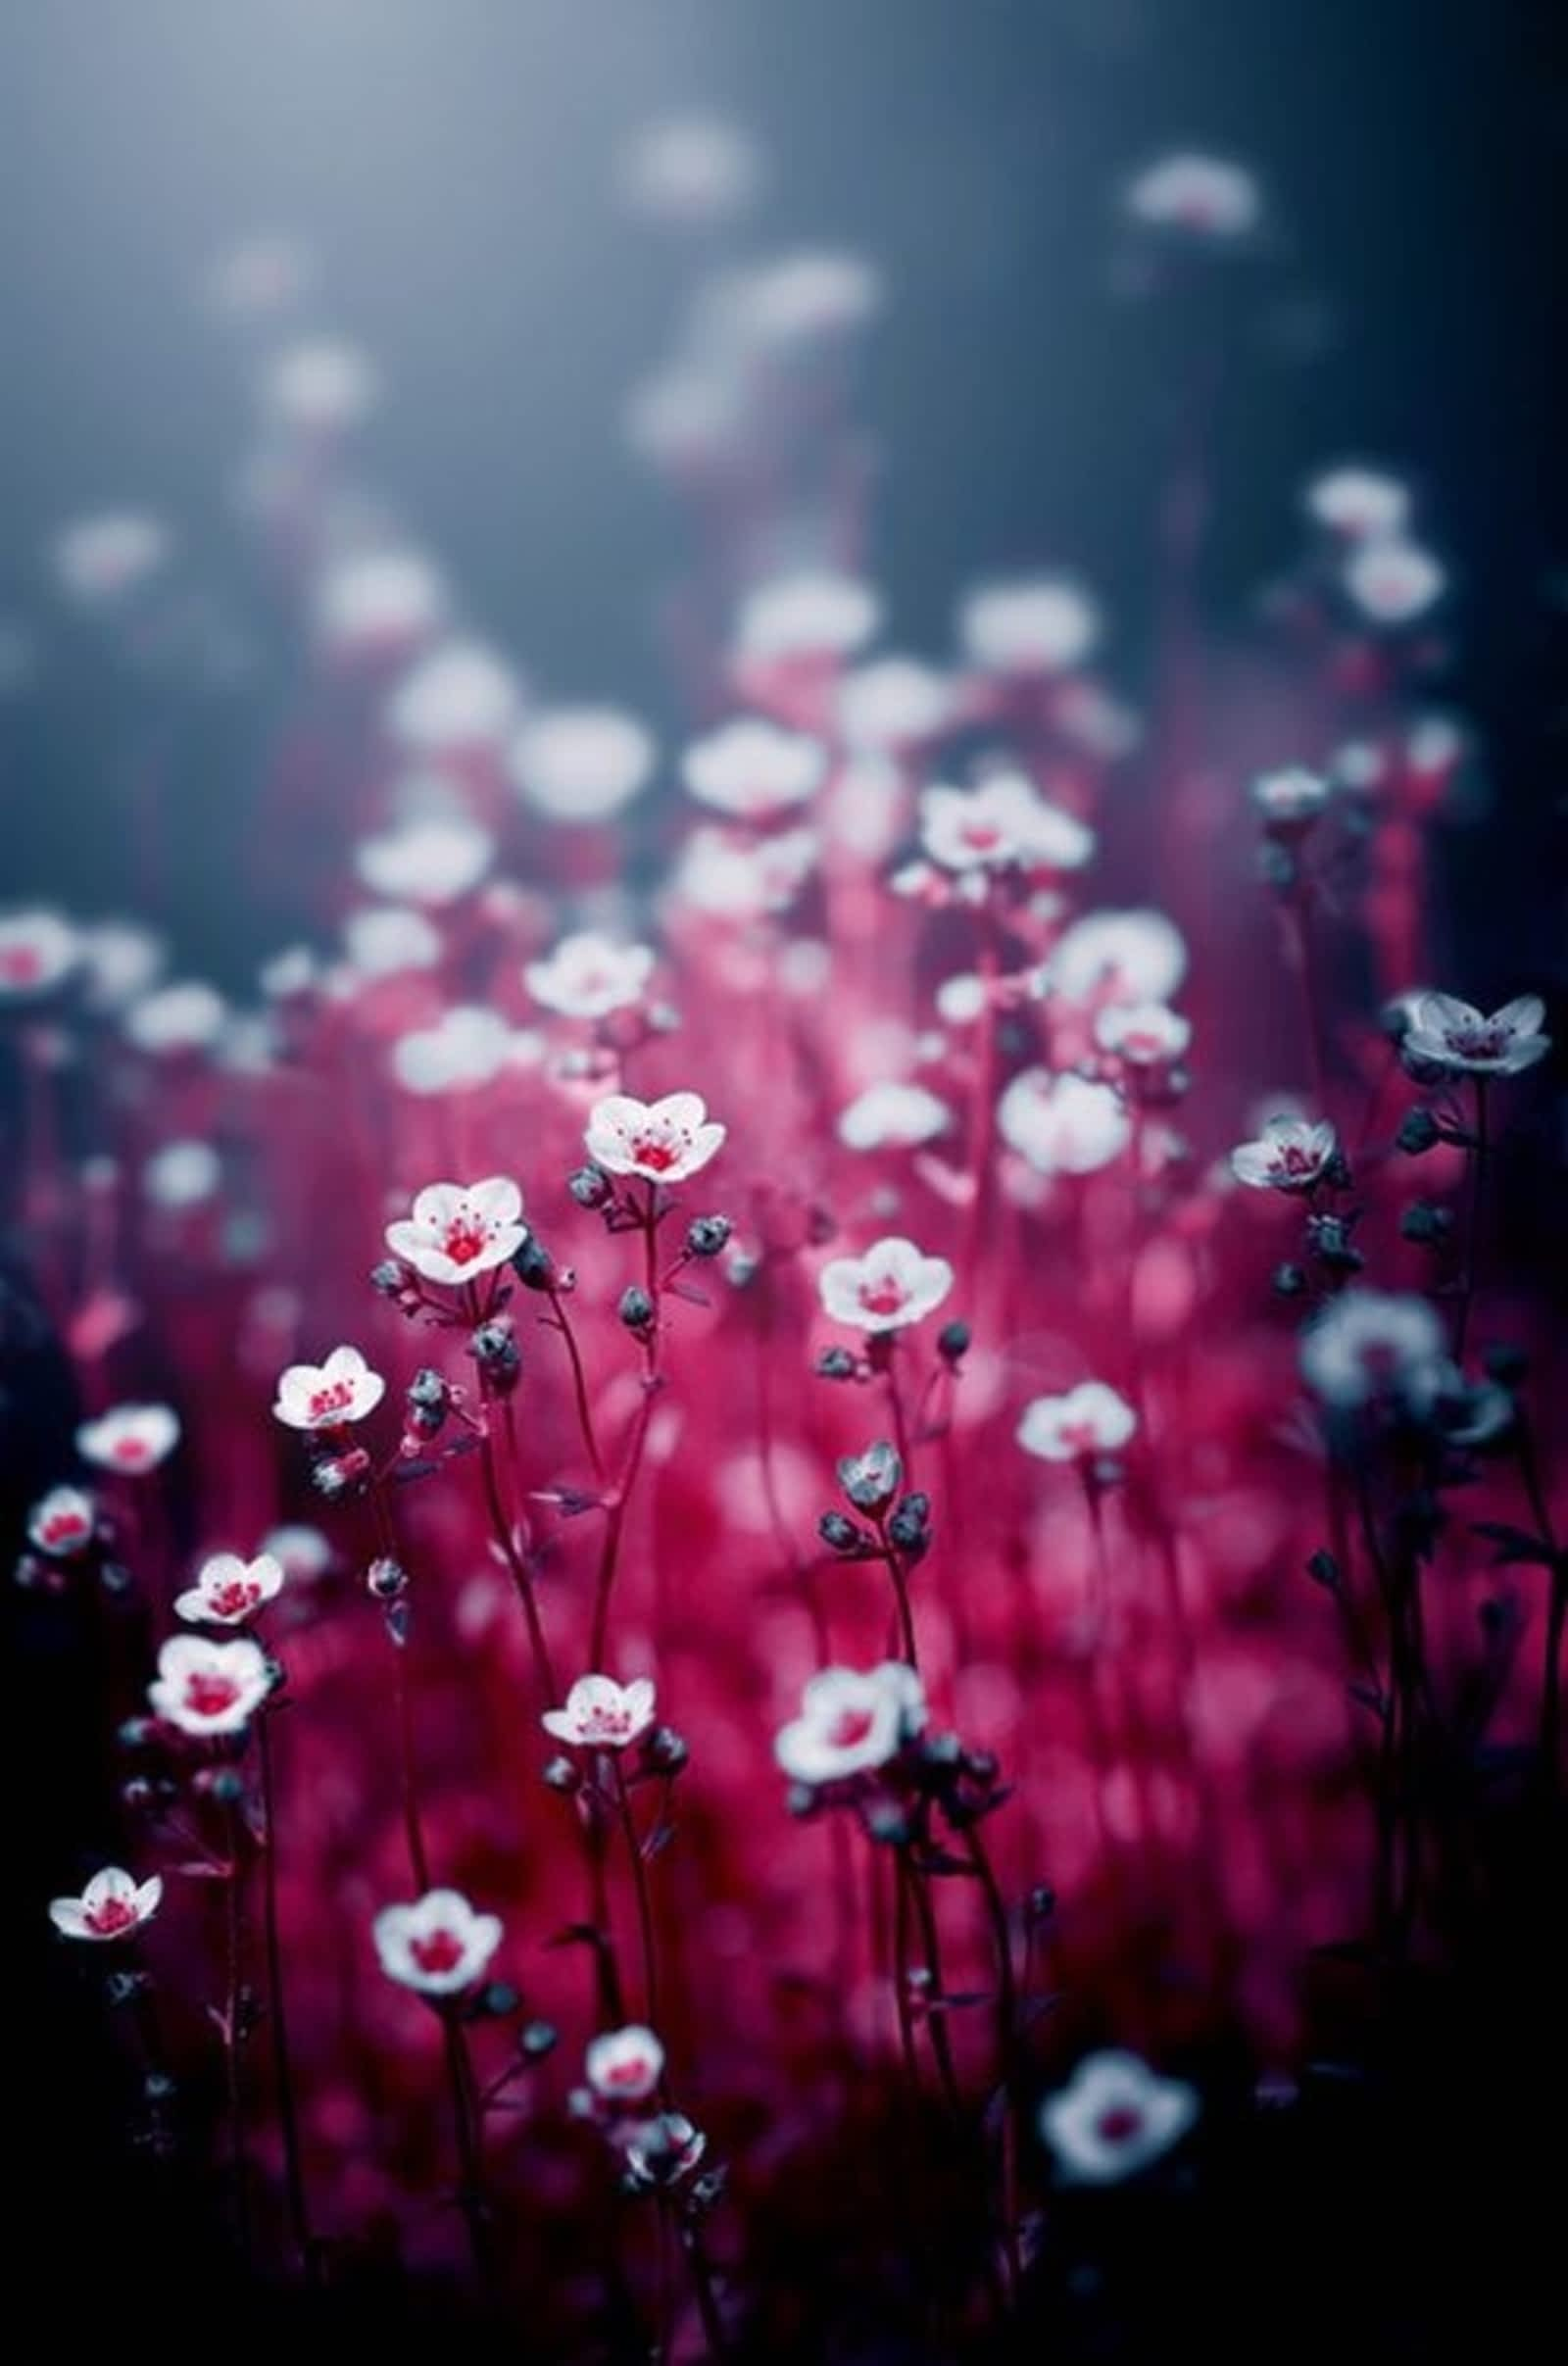 flowers color bright flora nature summer blur desktop abstract garden